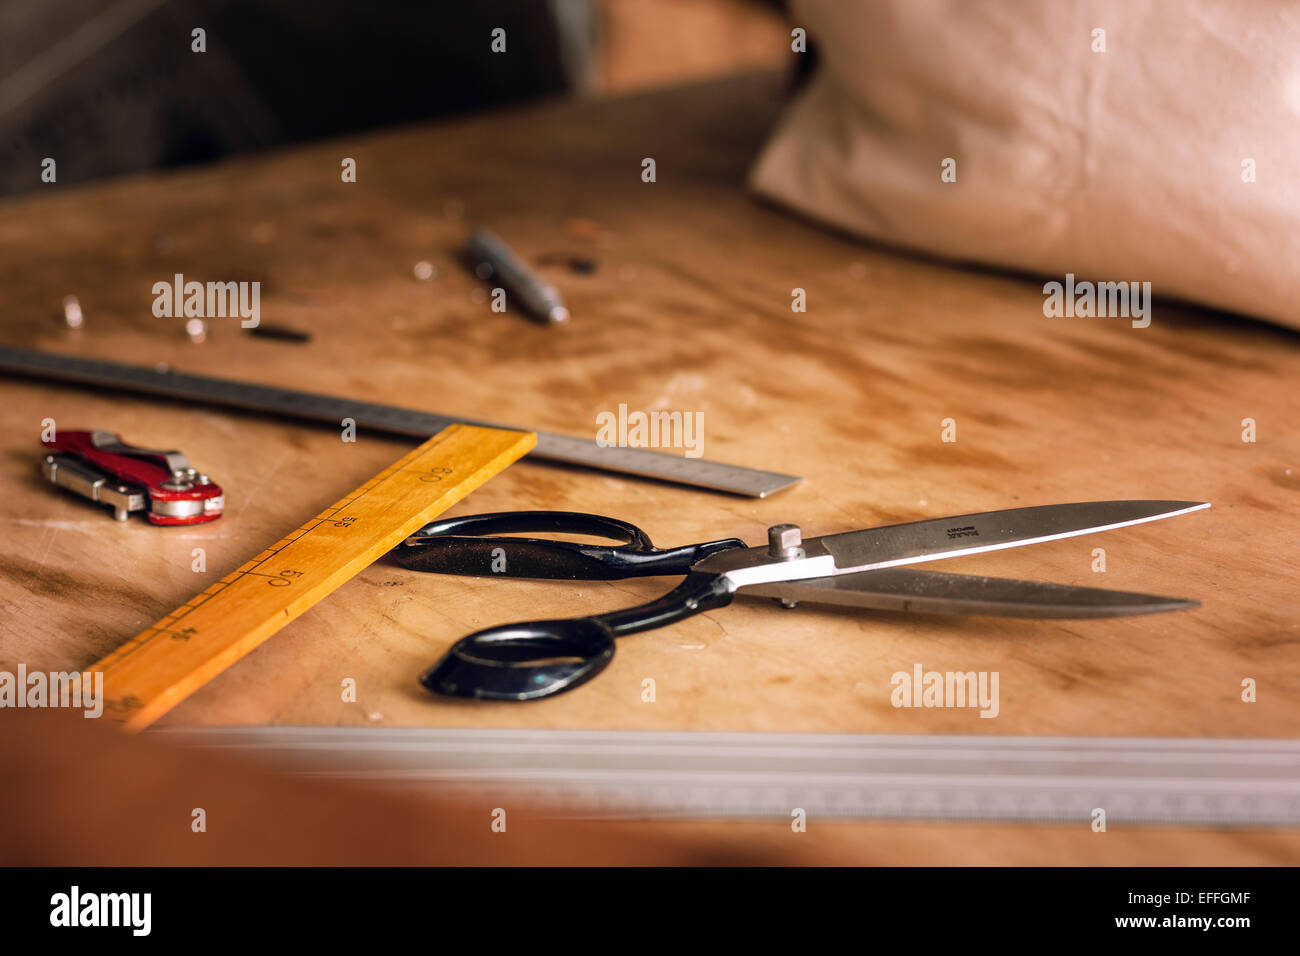 Craft equipment on table at bag manufacturing factory - Stock Image